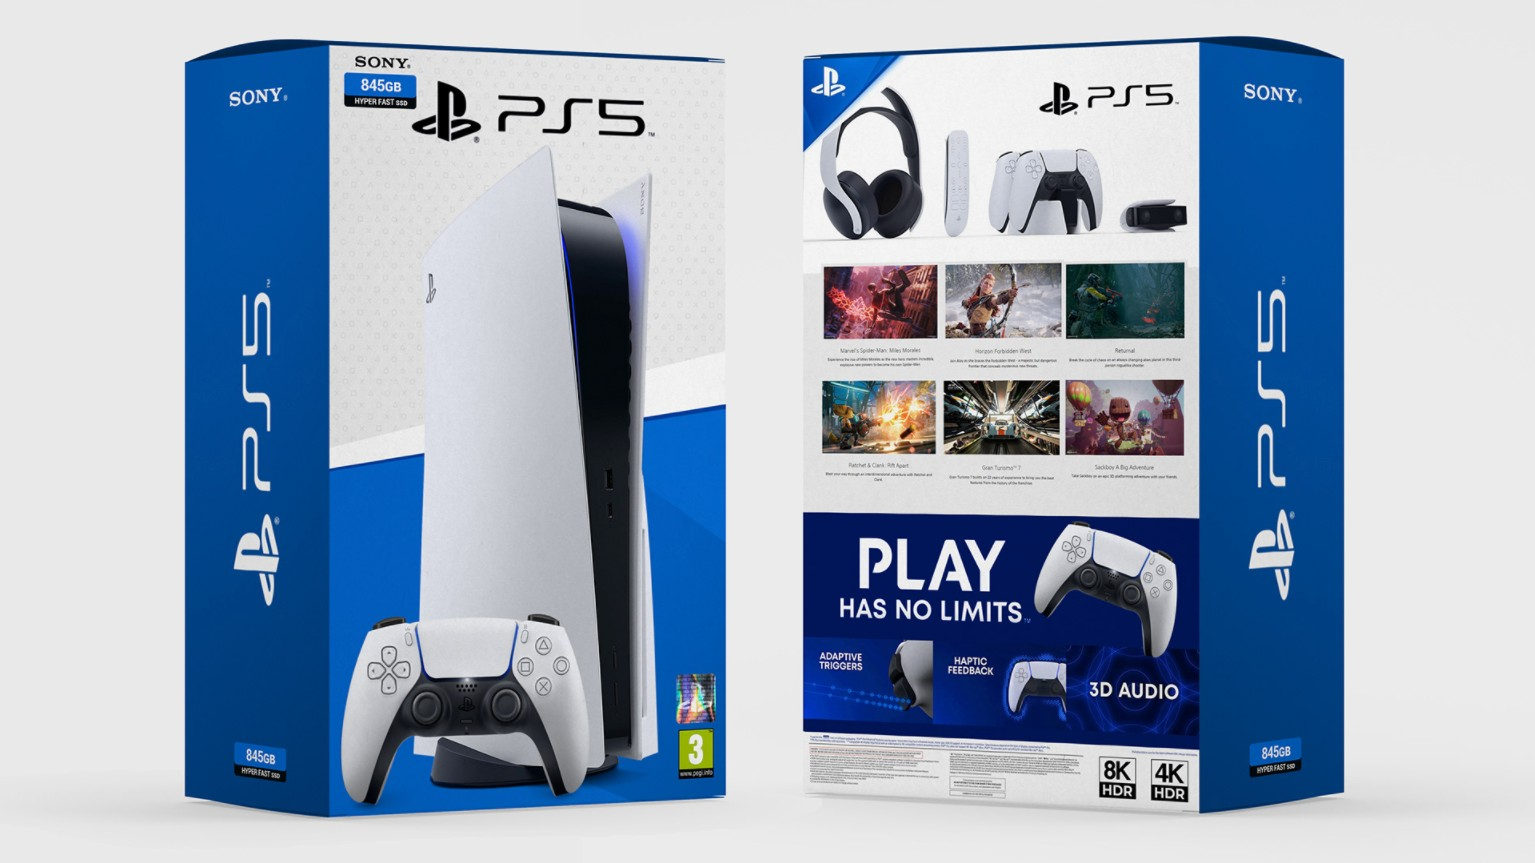 Top 10 Reasons to Purchase PlayStation 5 Console Right Now